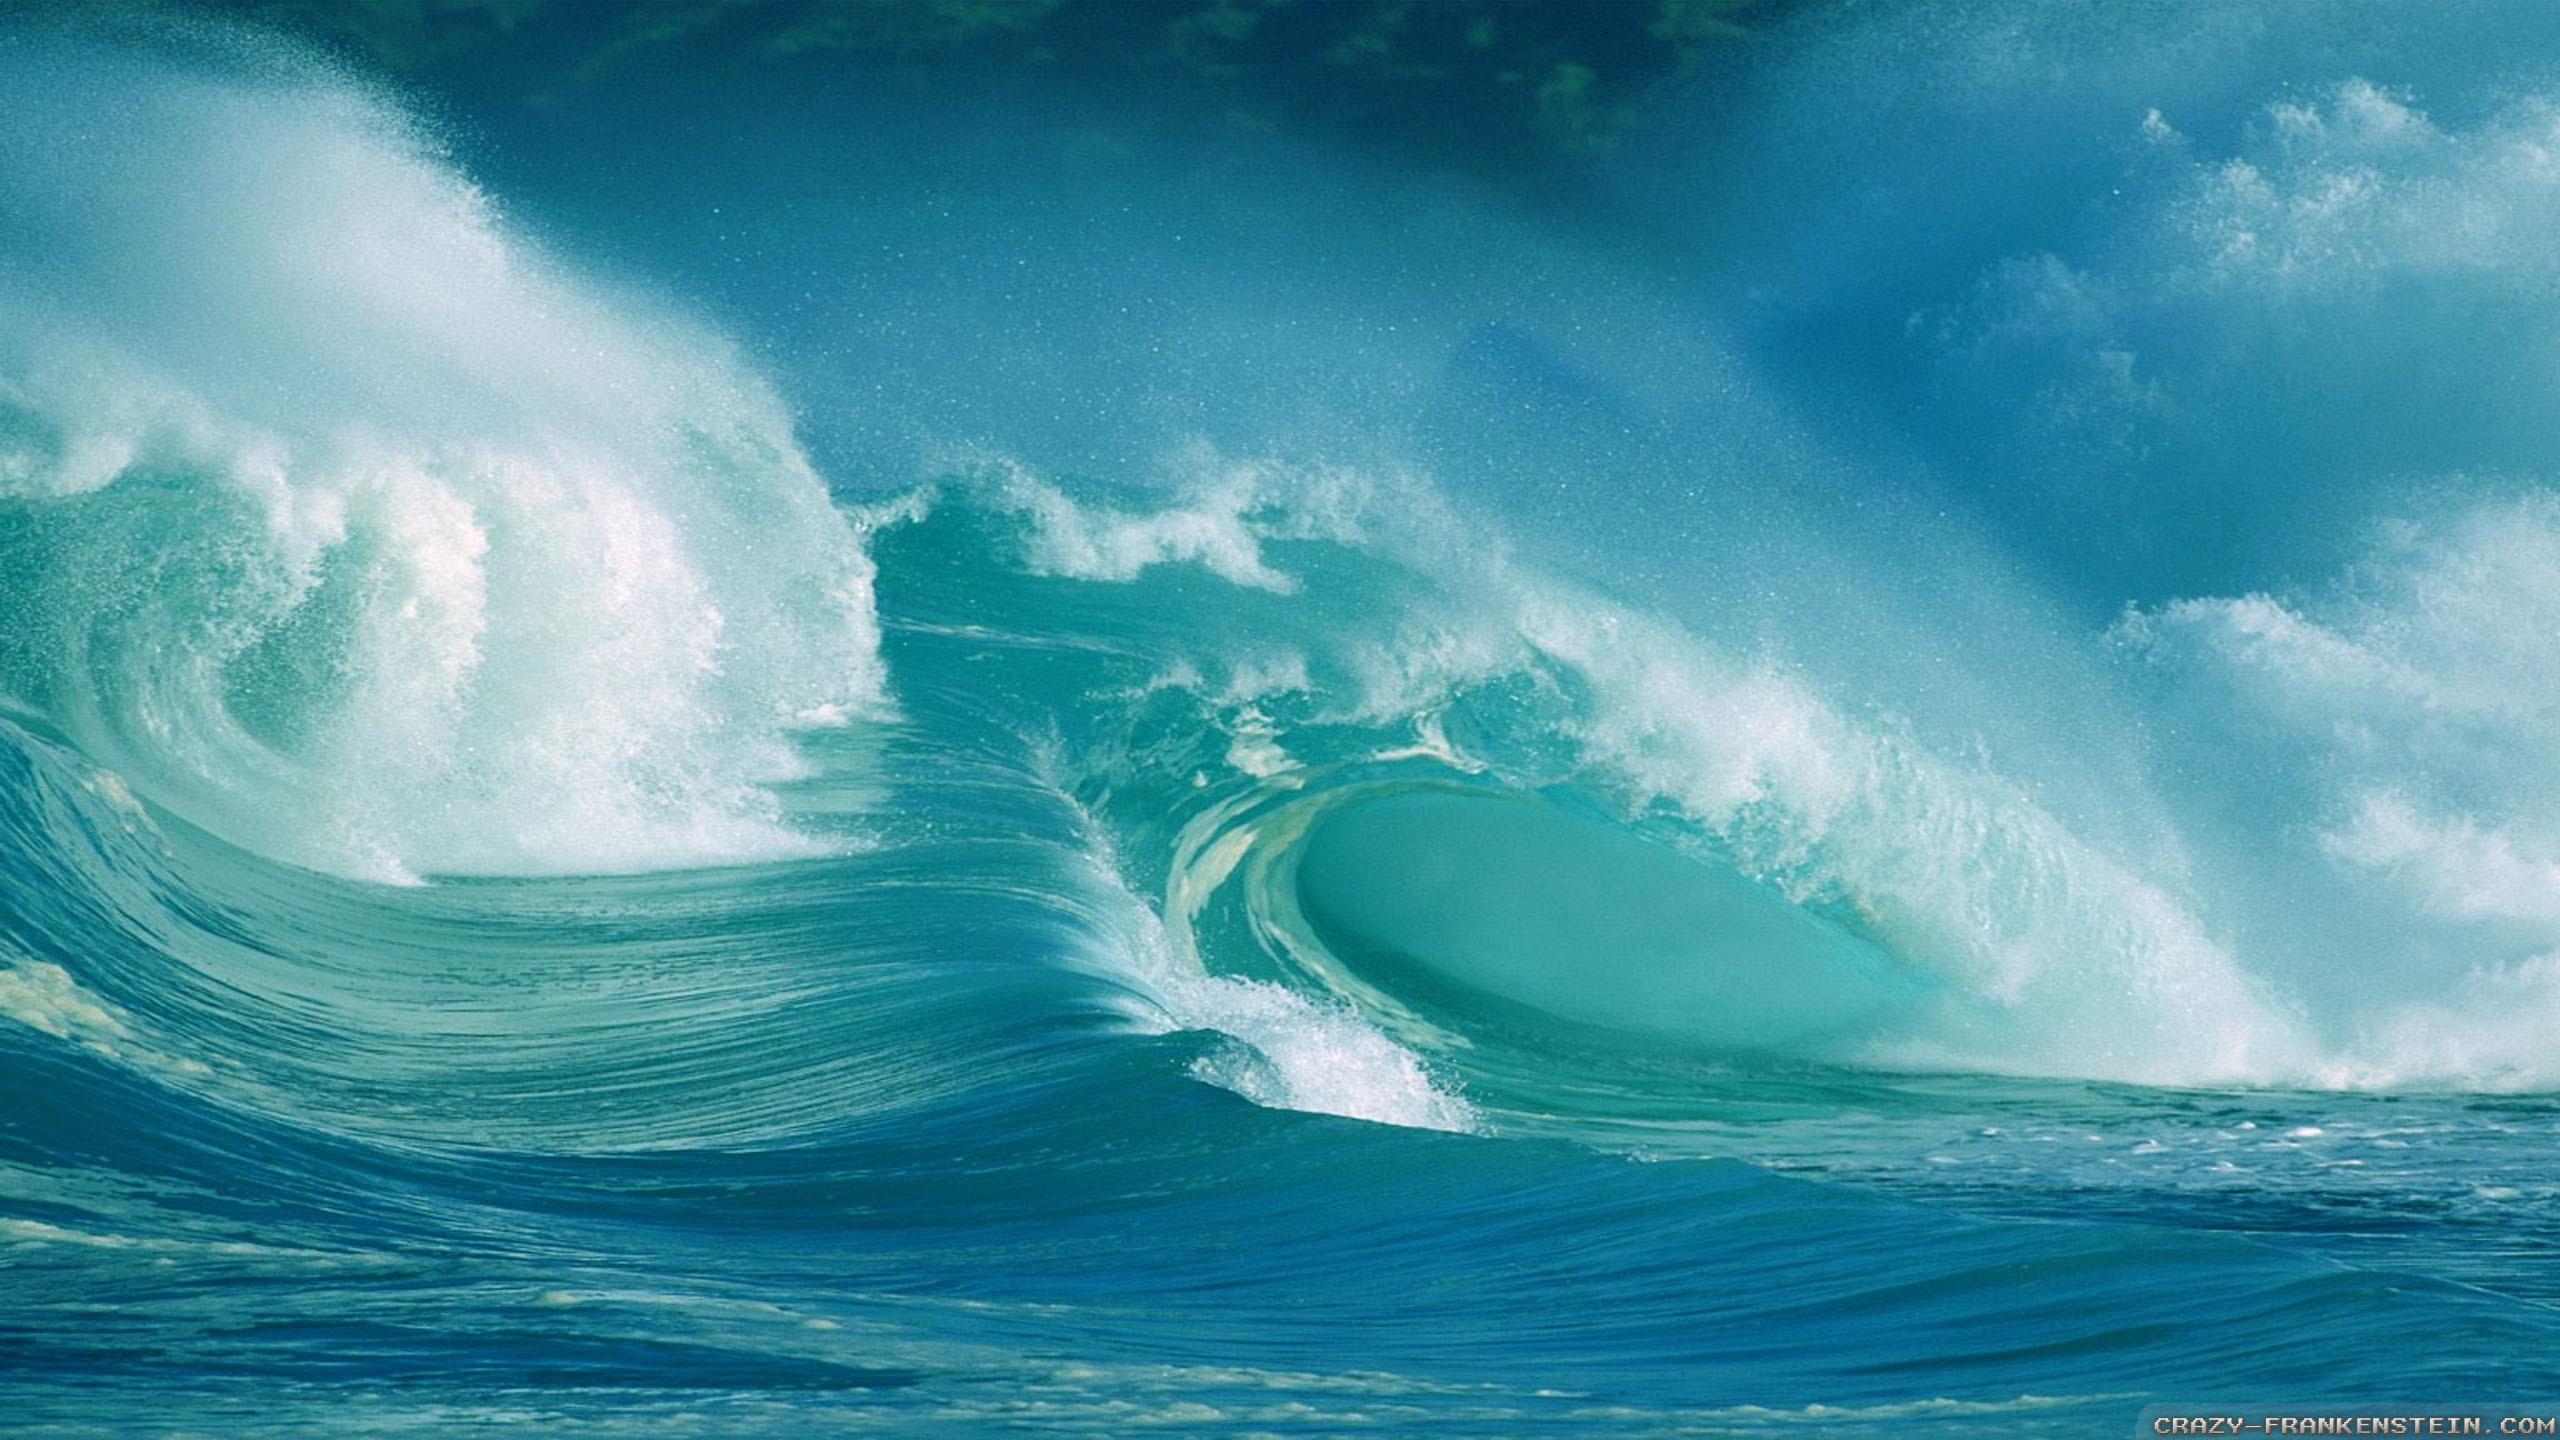 2560x1440 tsunami picture - Full HD Wallpapers, Photos by Nixon Young. Ocean  WavesOceansMother ...